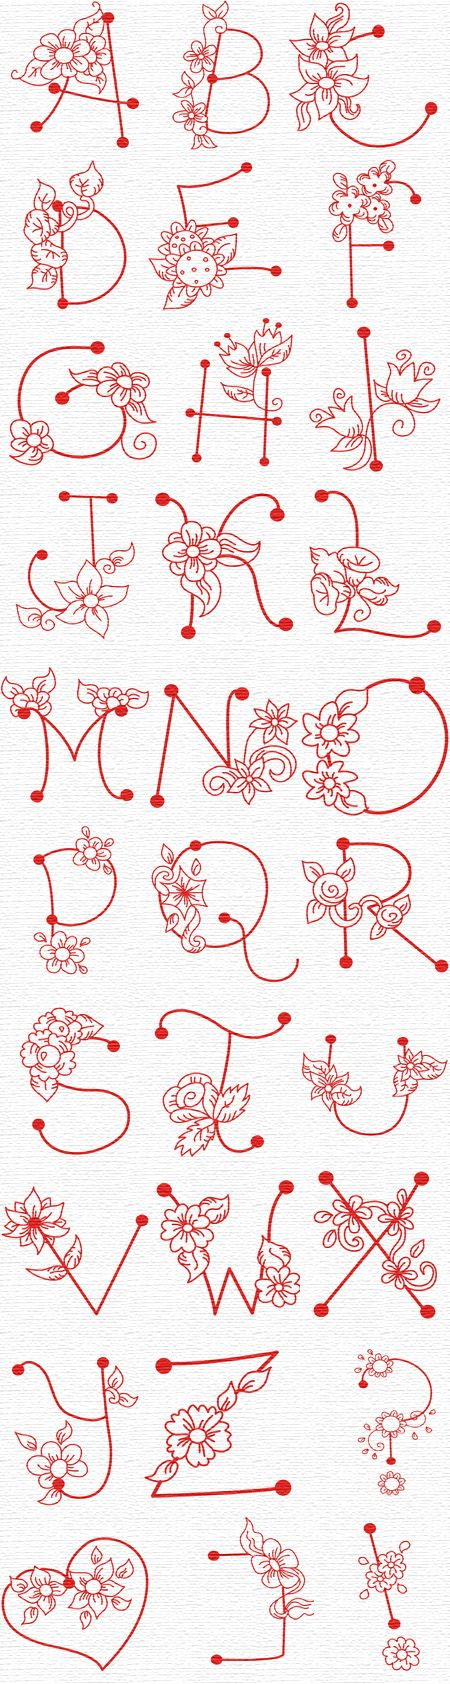 Flower letters for embroidery